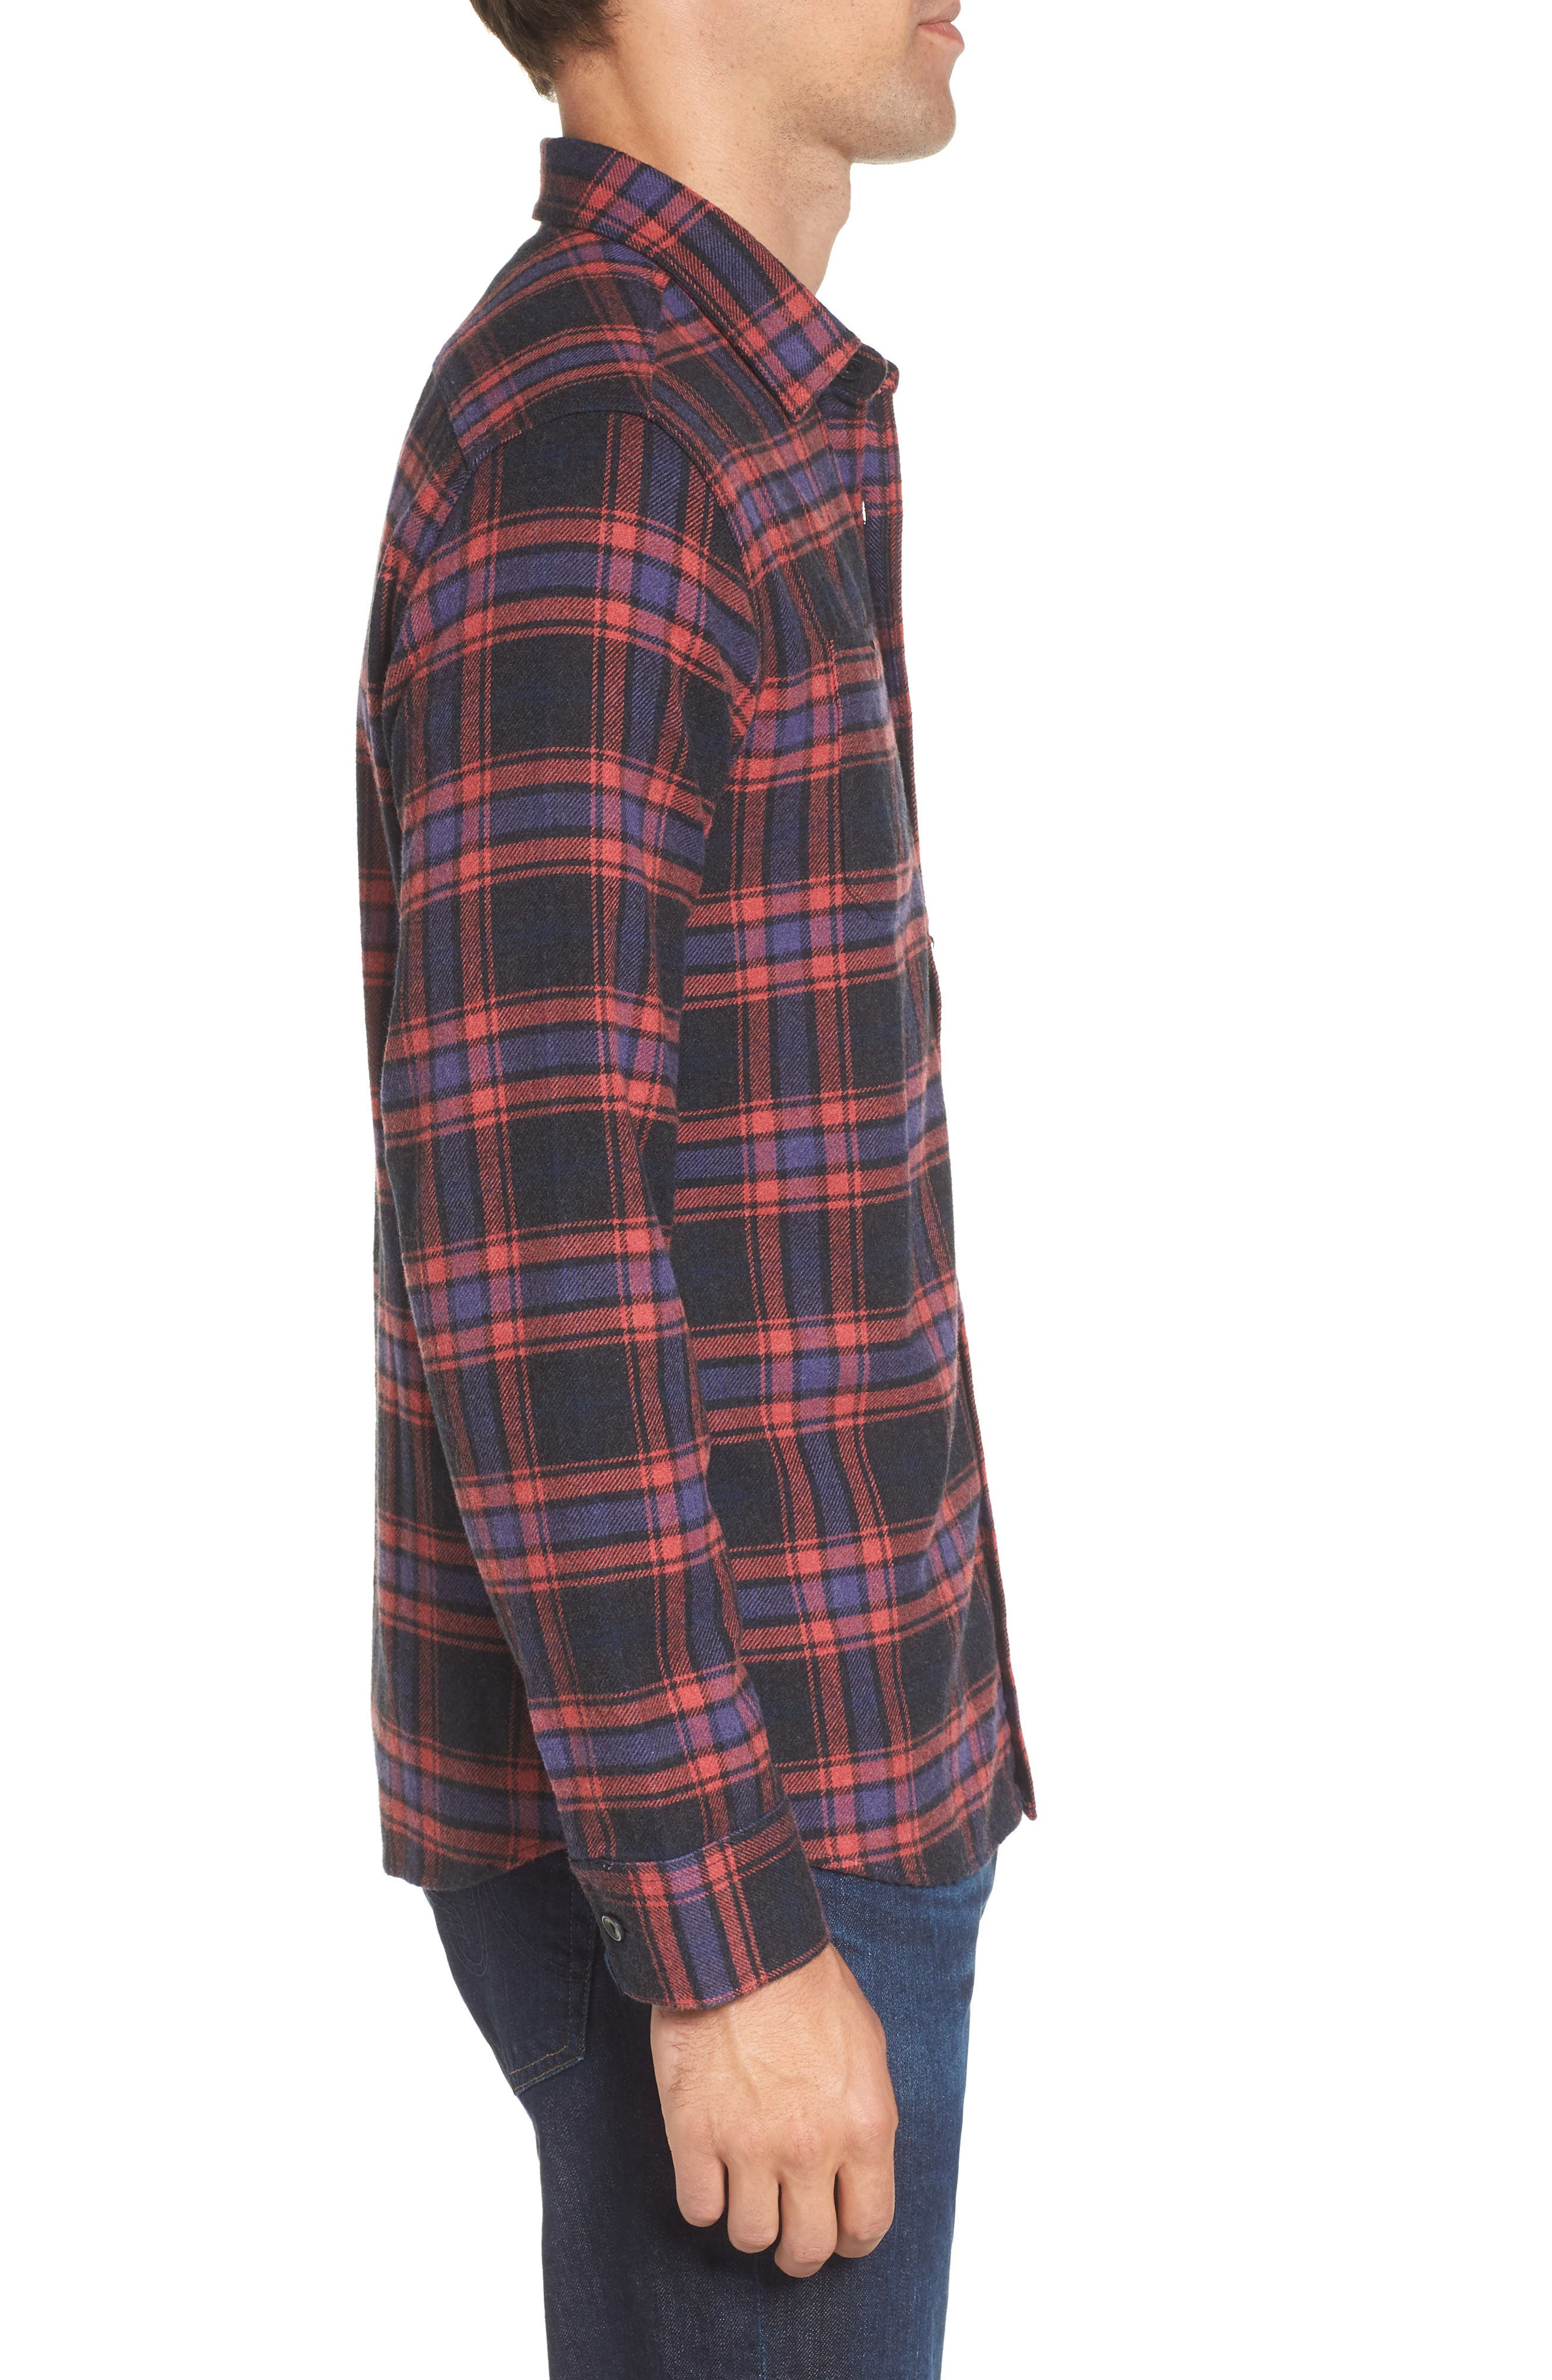 Chaucer Heritage Flannel Shirt,                             Alternate thumbnail 3, color,                             641